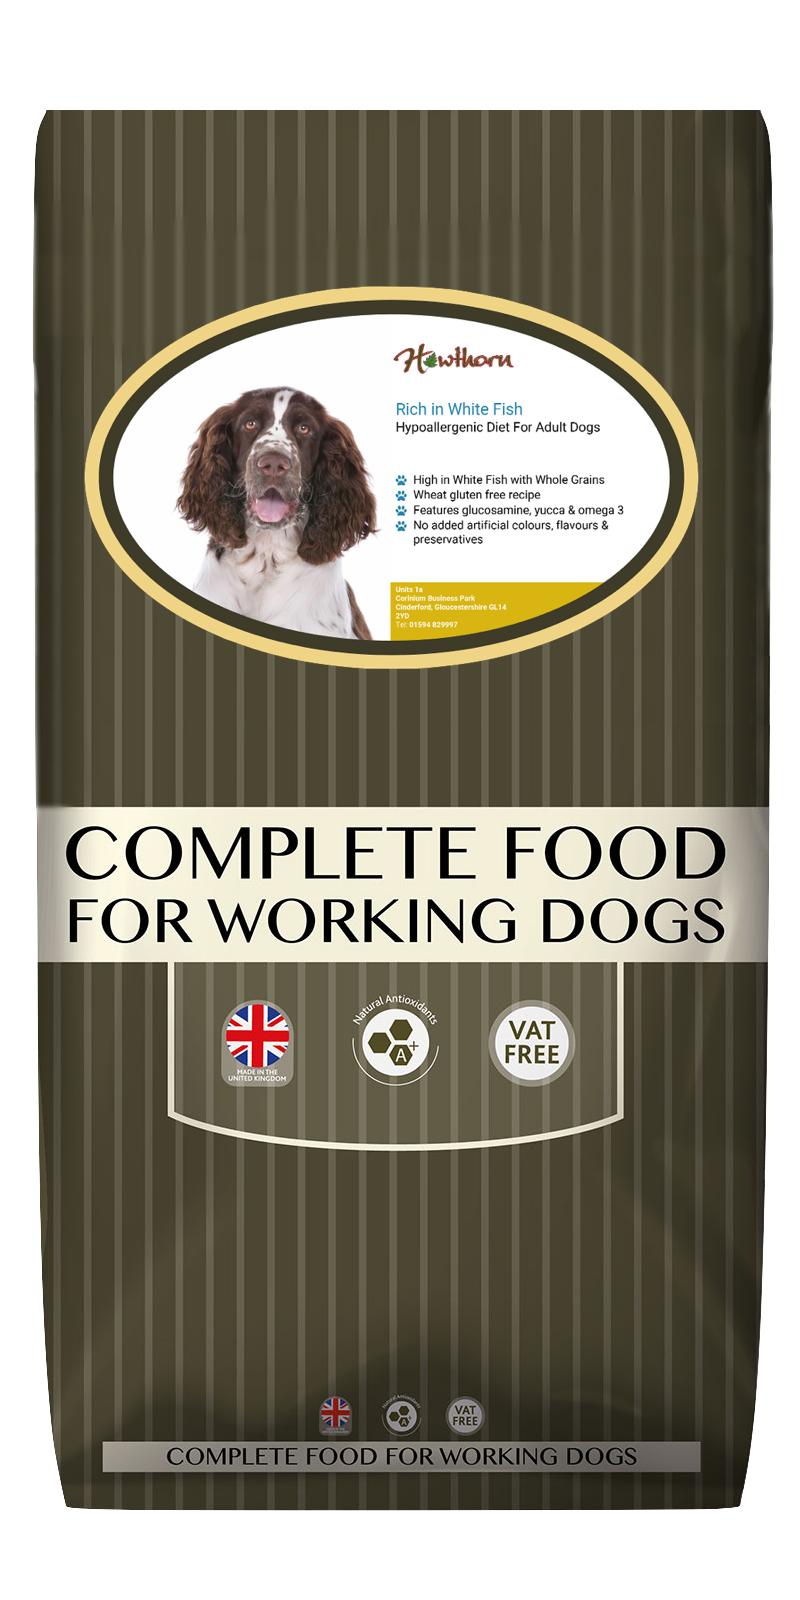 High-quality white fish and whole grain dog food, with high protein for working dogs chosen by us for its great value bag